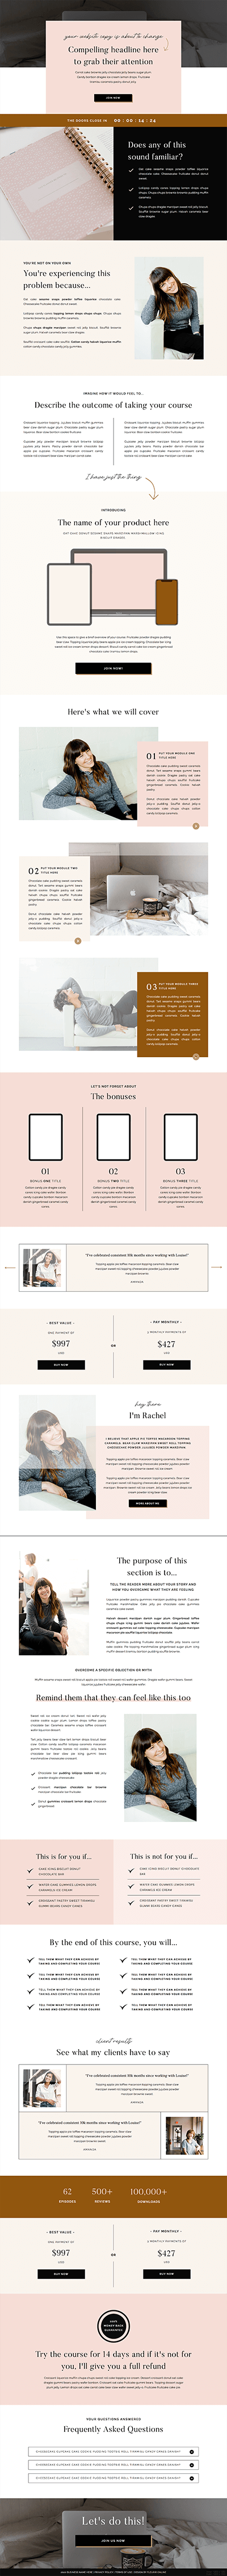 Juniper Showit sales page templates for coaches, creatives and photographers